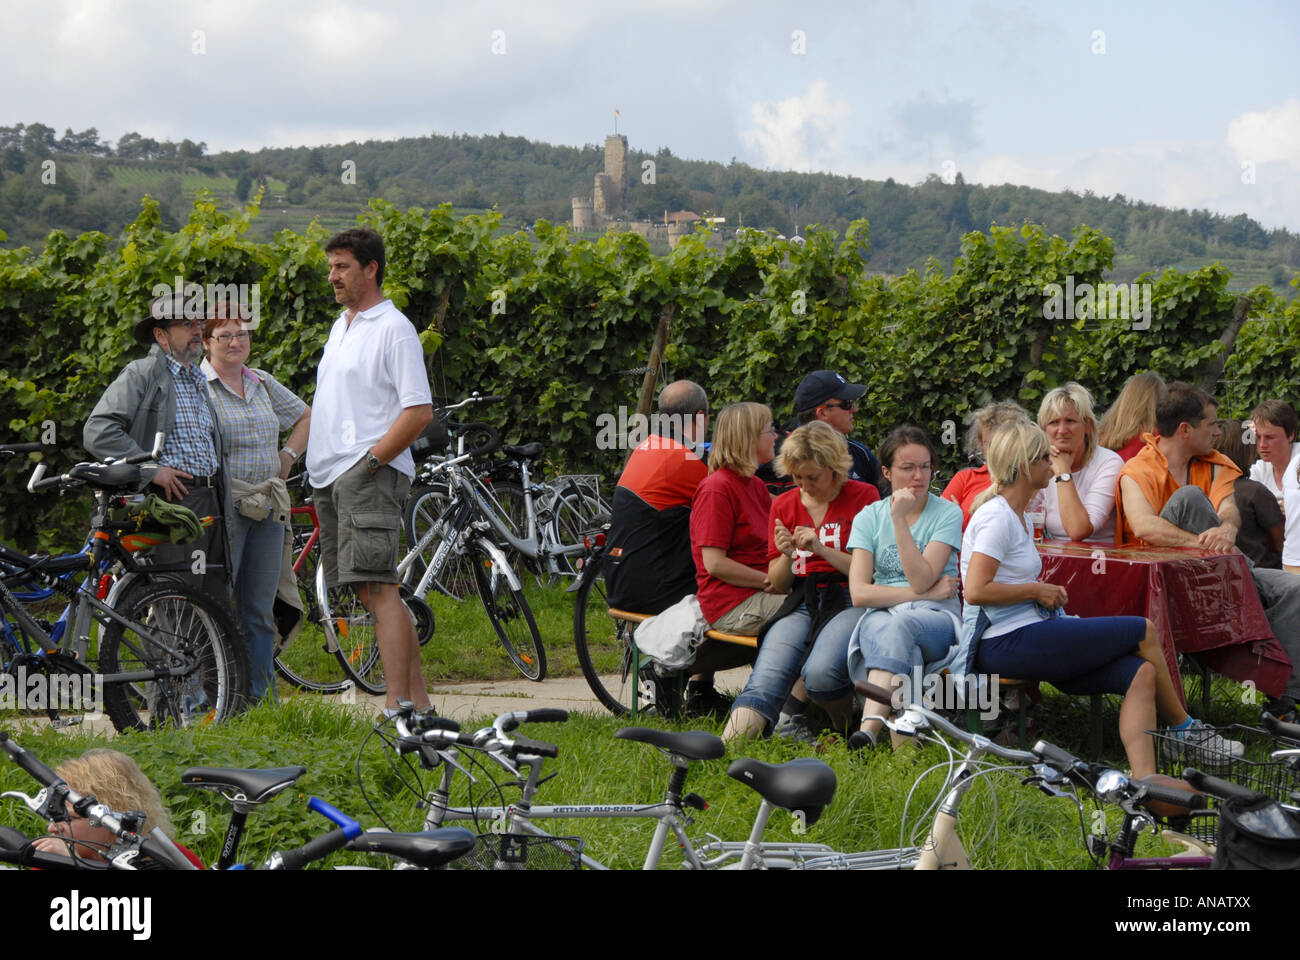 near Forst and Wachenheim; German wine route day, streets closed for cars, Germany, Rhineland-Palatinate, Deutsche - Stock Image